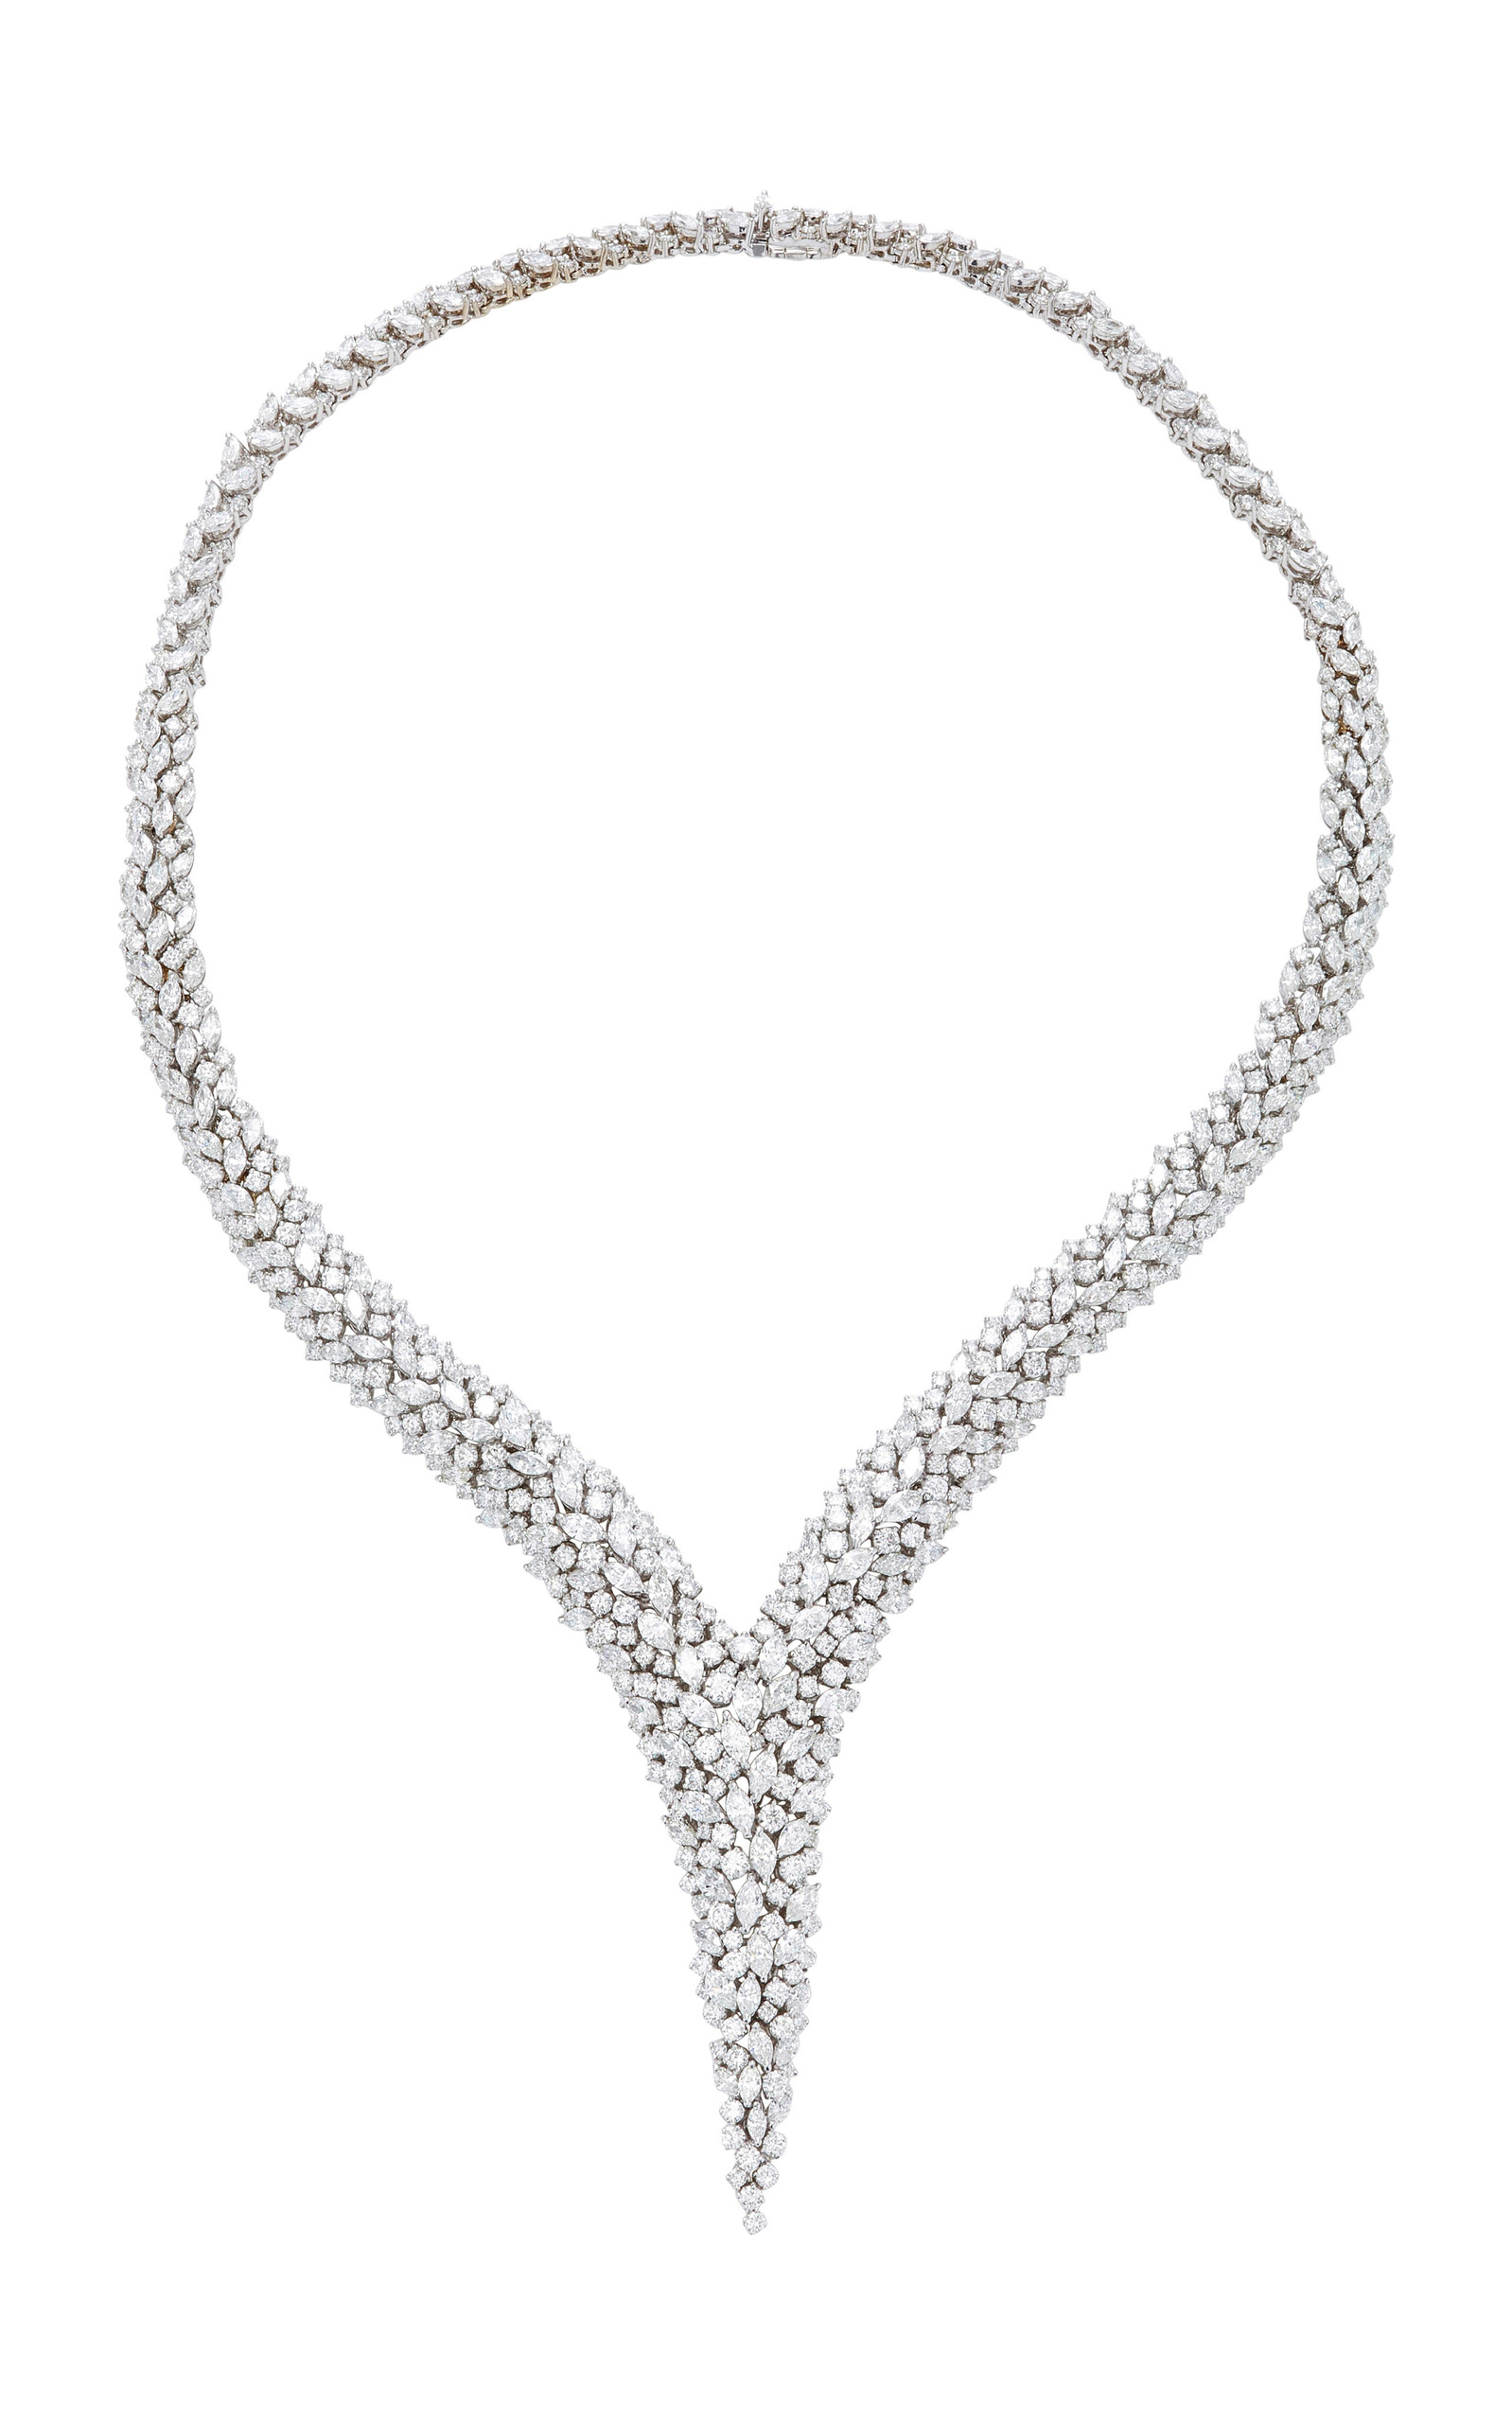 sterling blue of hires effervescence links en and gb london amp diamond necklace cheap silver